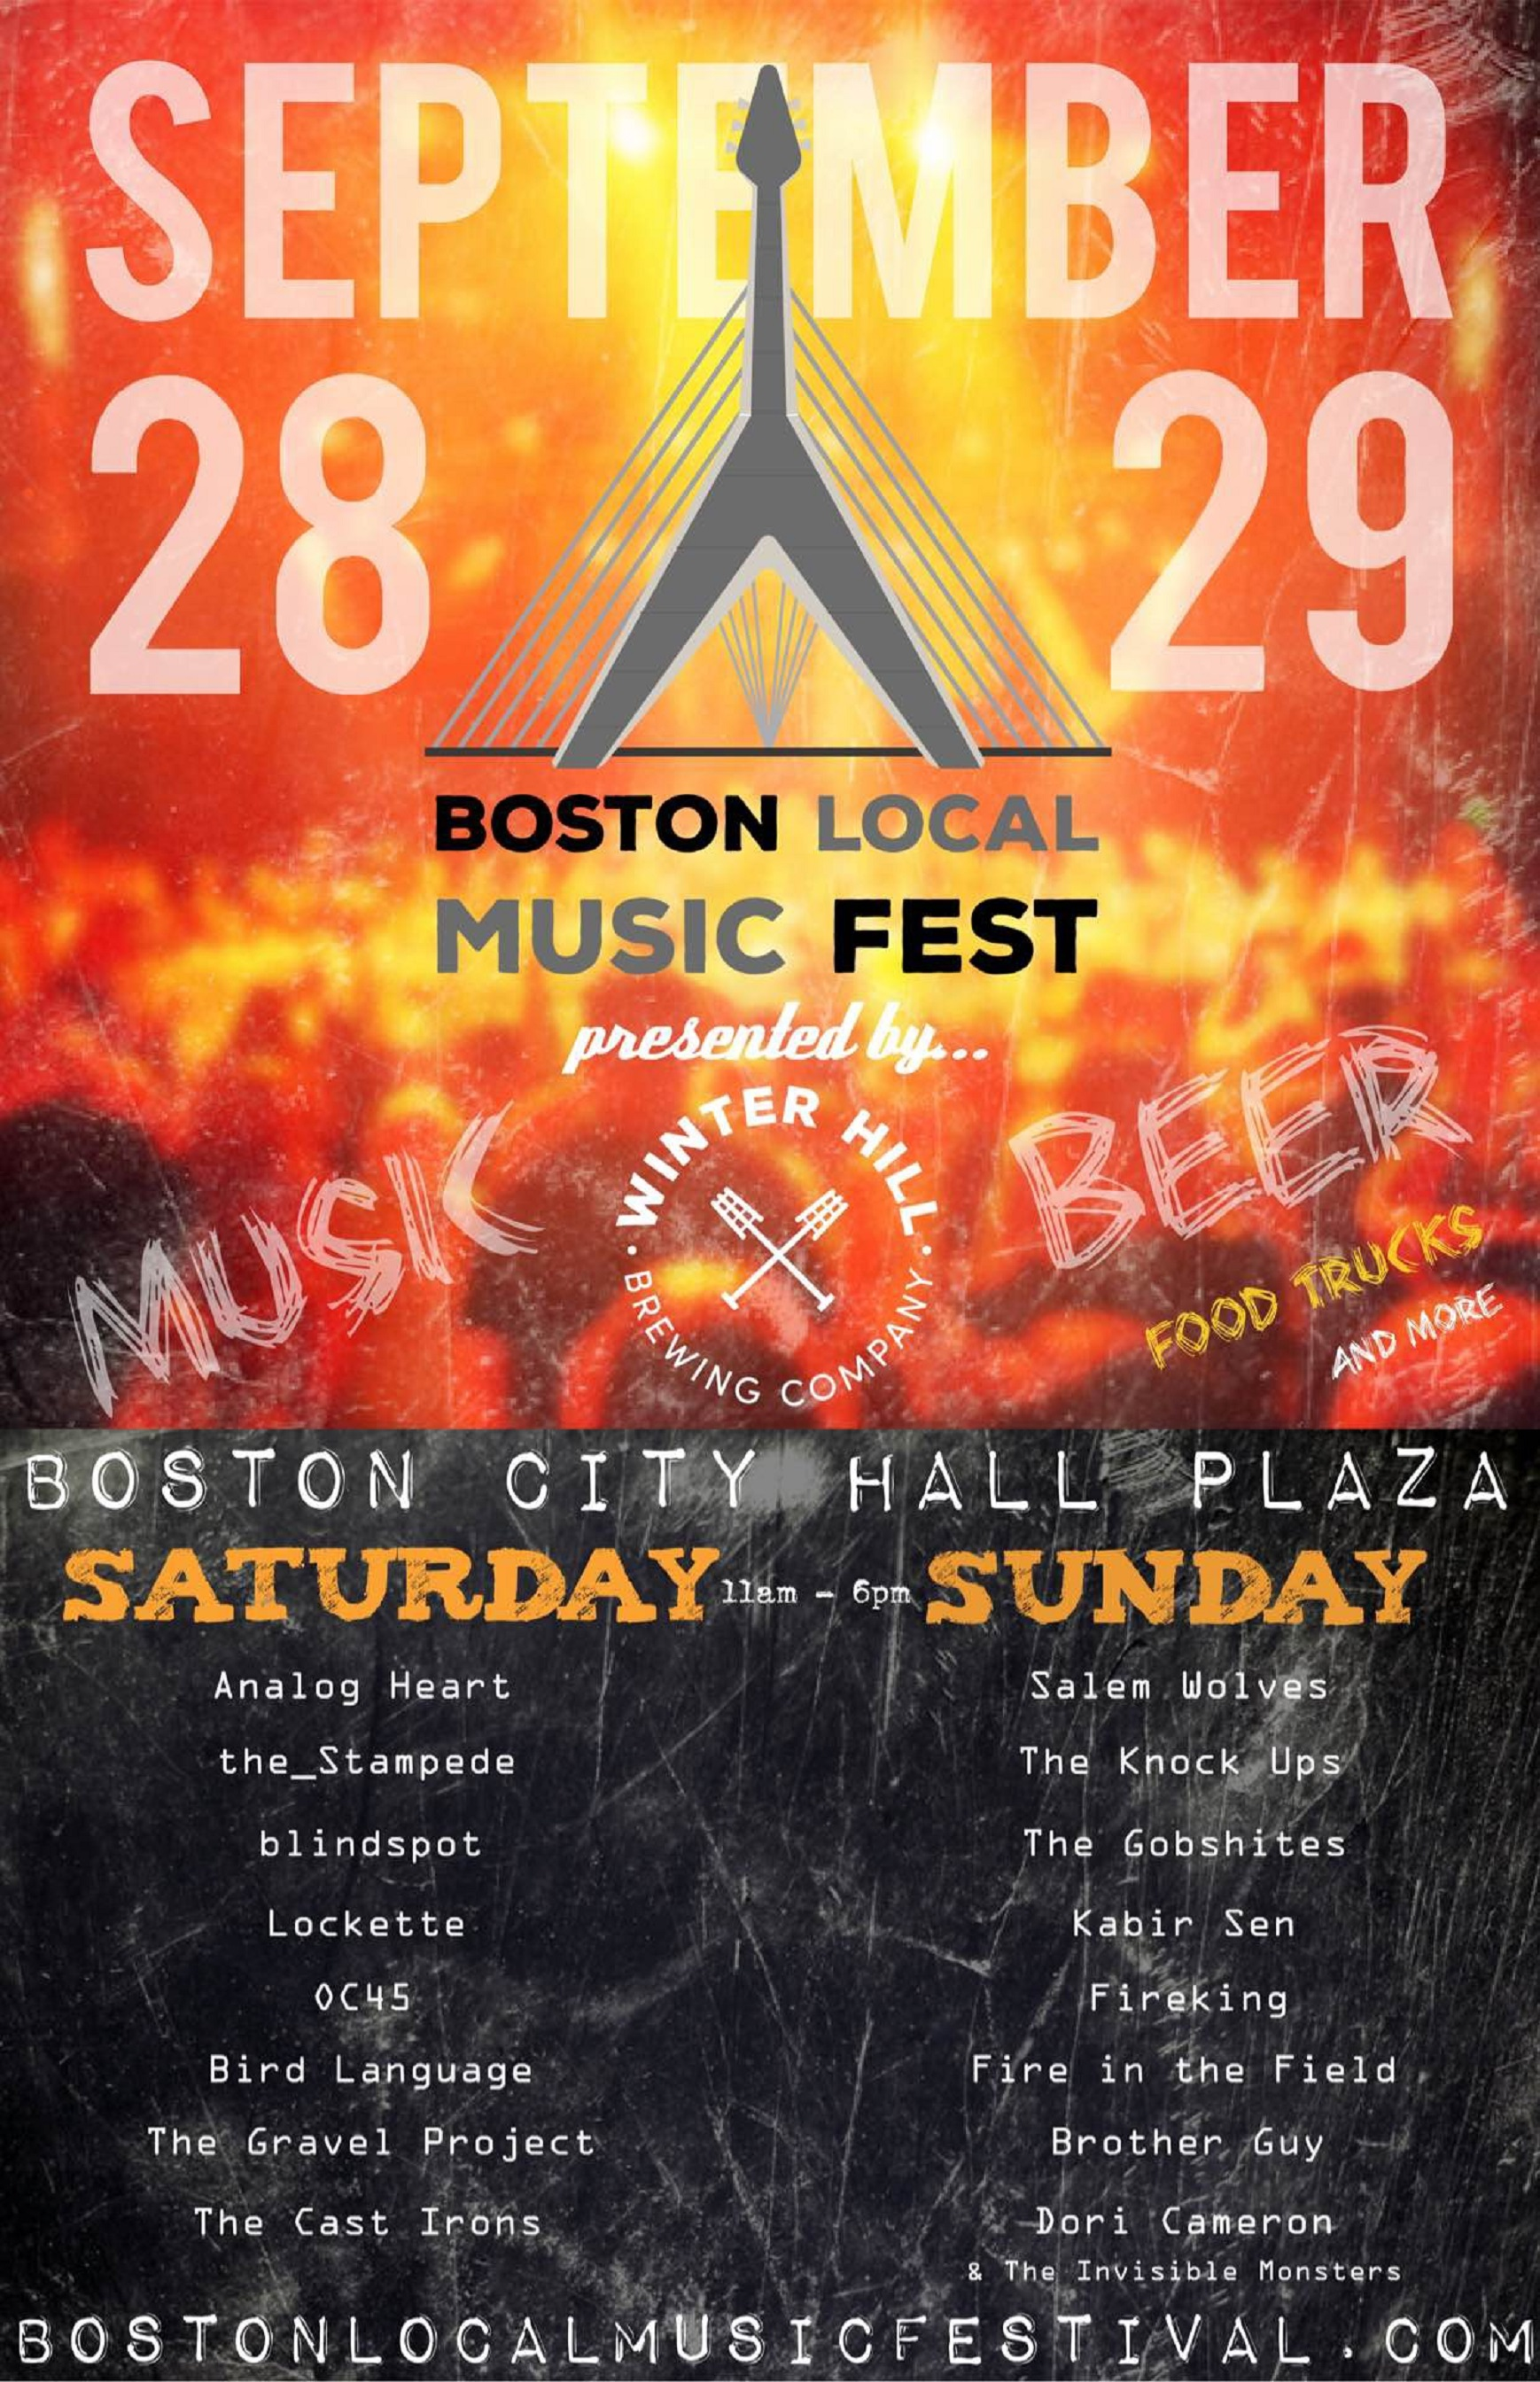 Boston Local Music Festival Takes Over City Hall Plaza